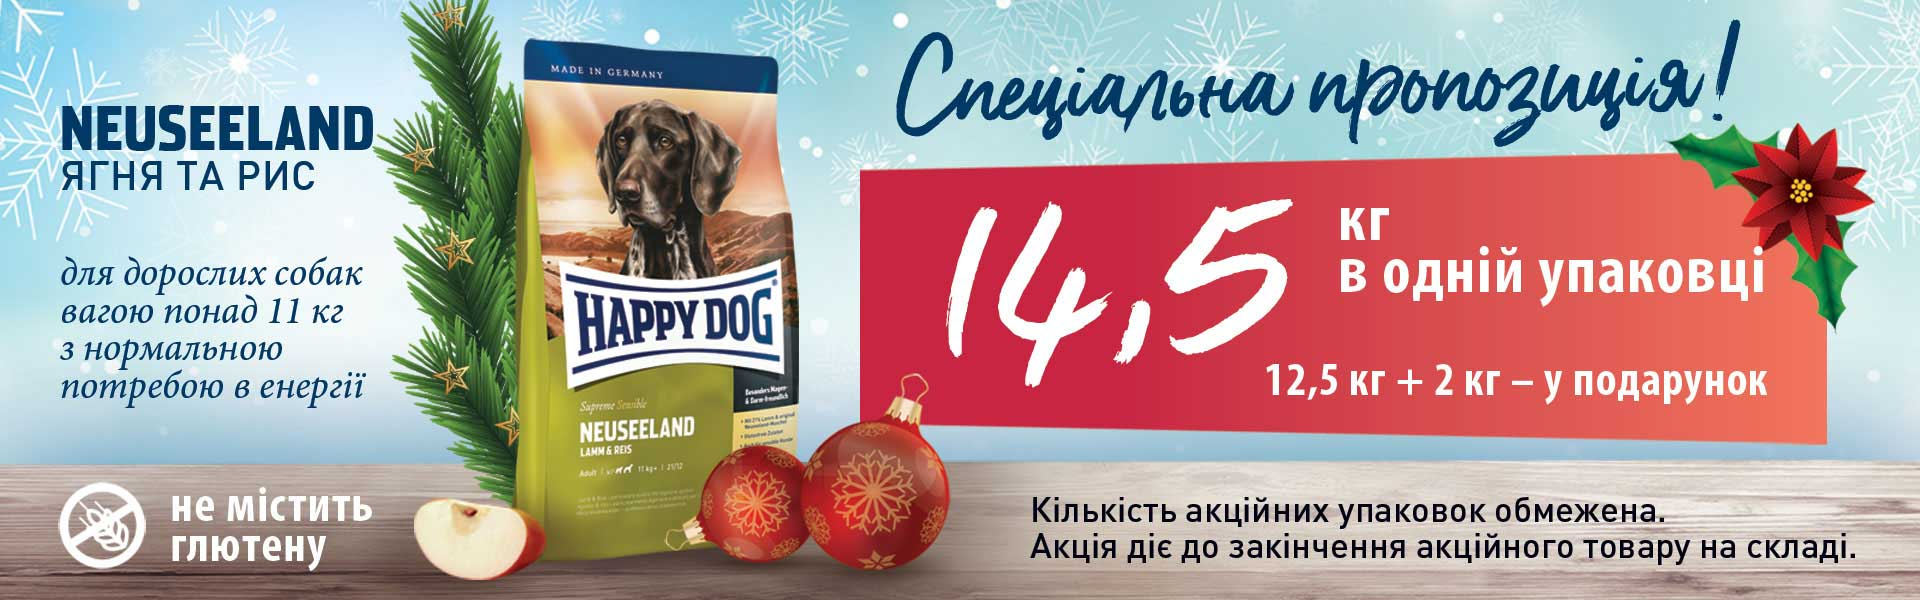 Happy Dog акция 12,5кг+2кг